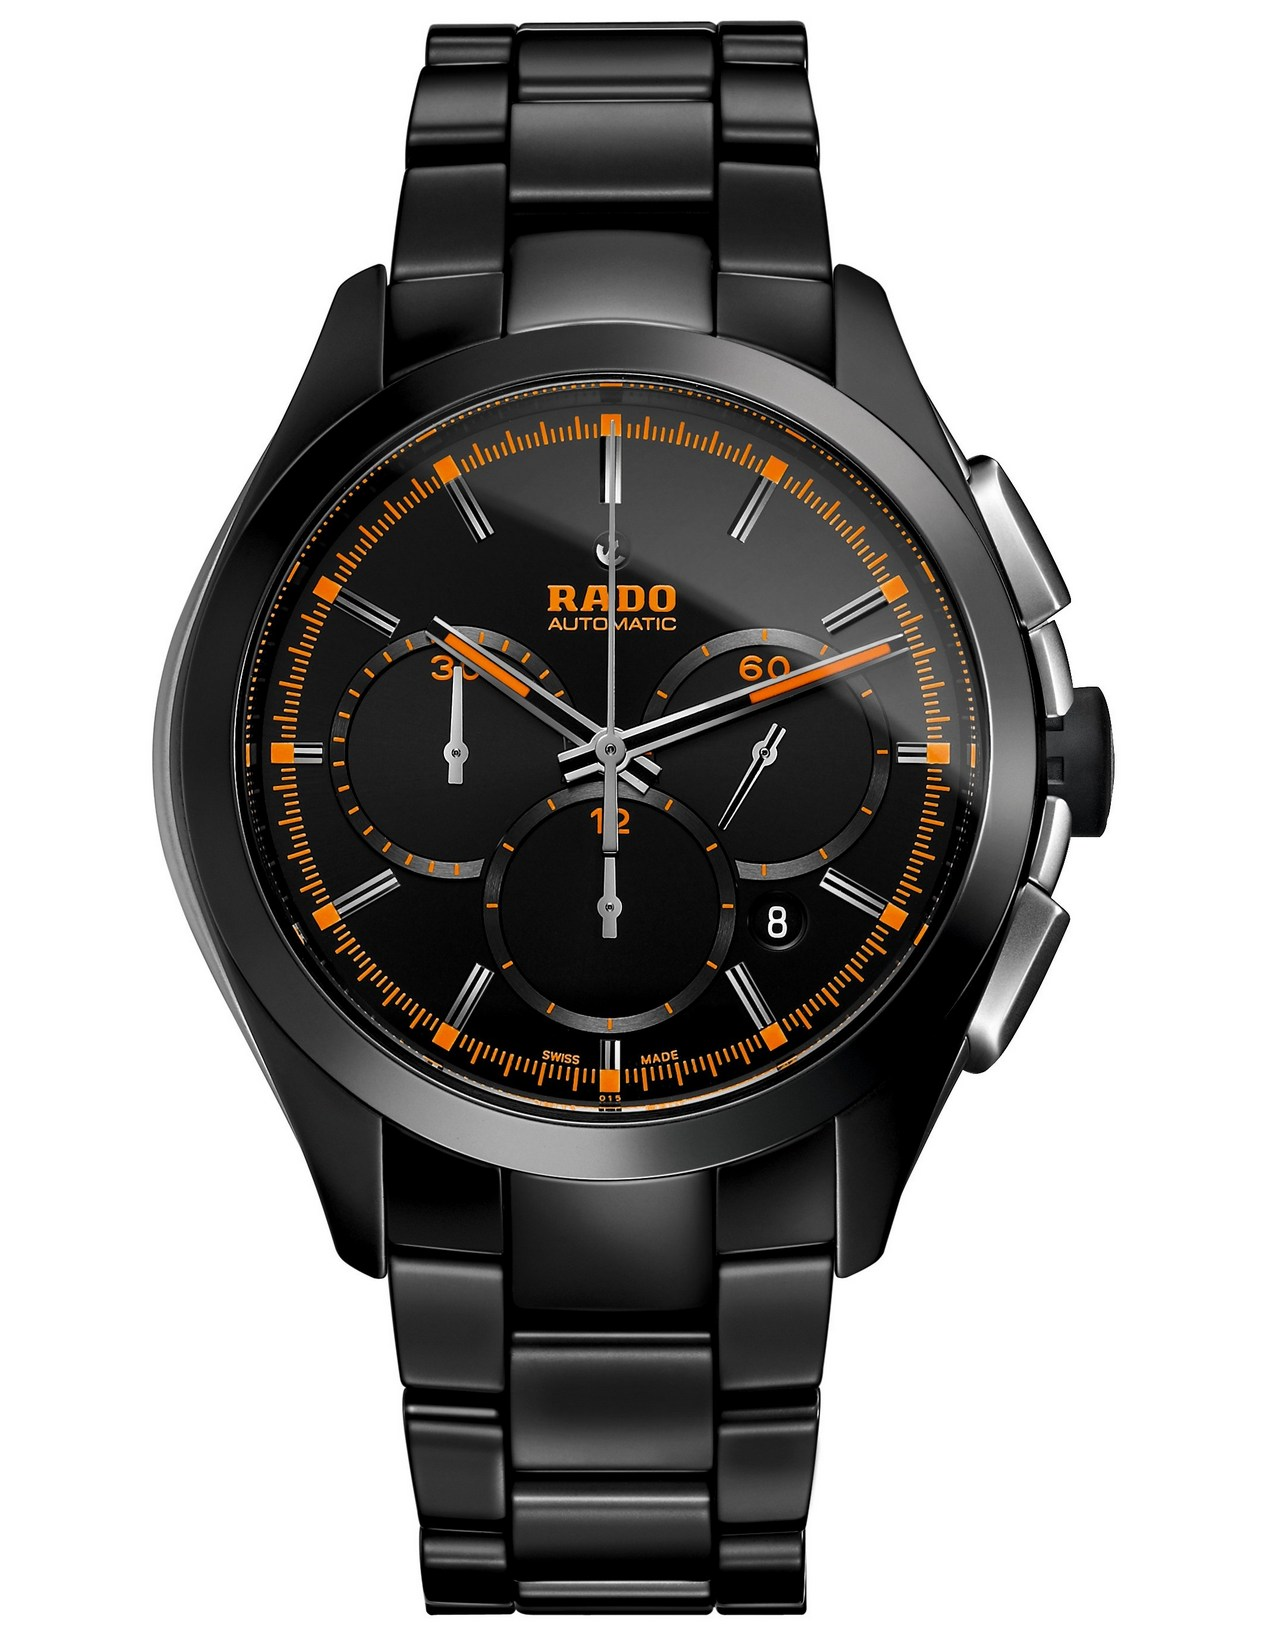 rado-hyperchrome-court-collection_0-100_1